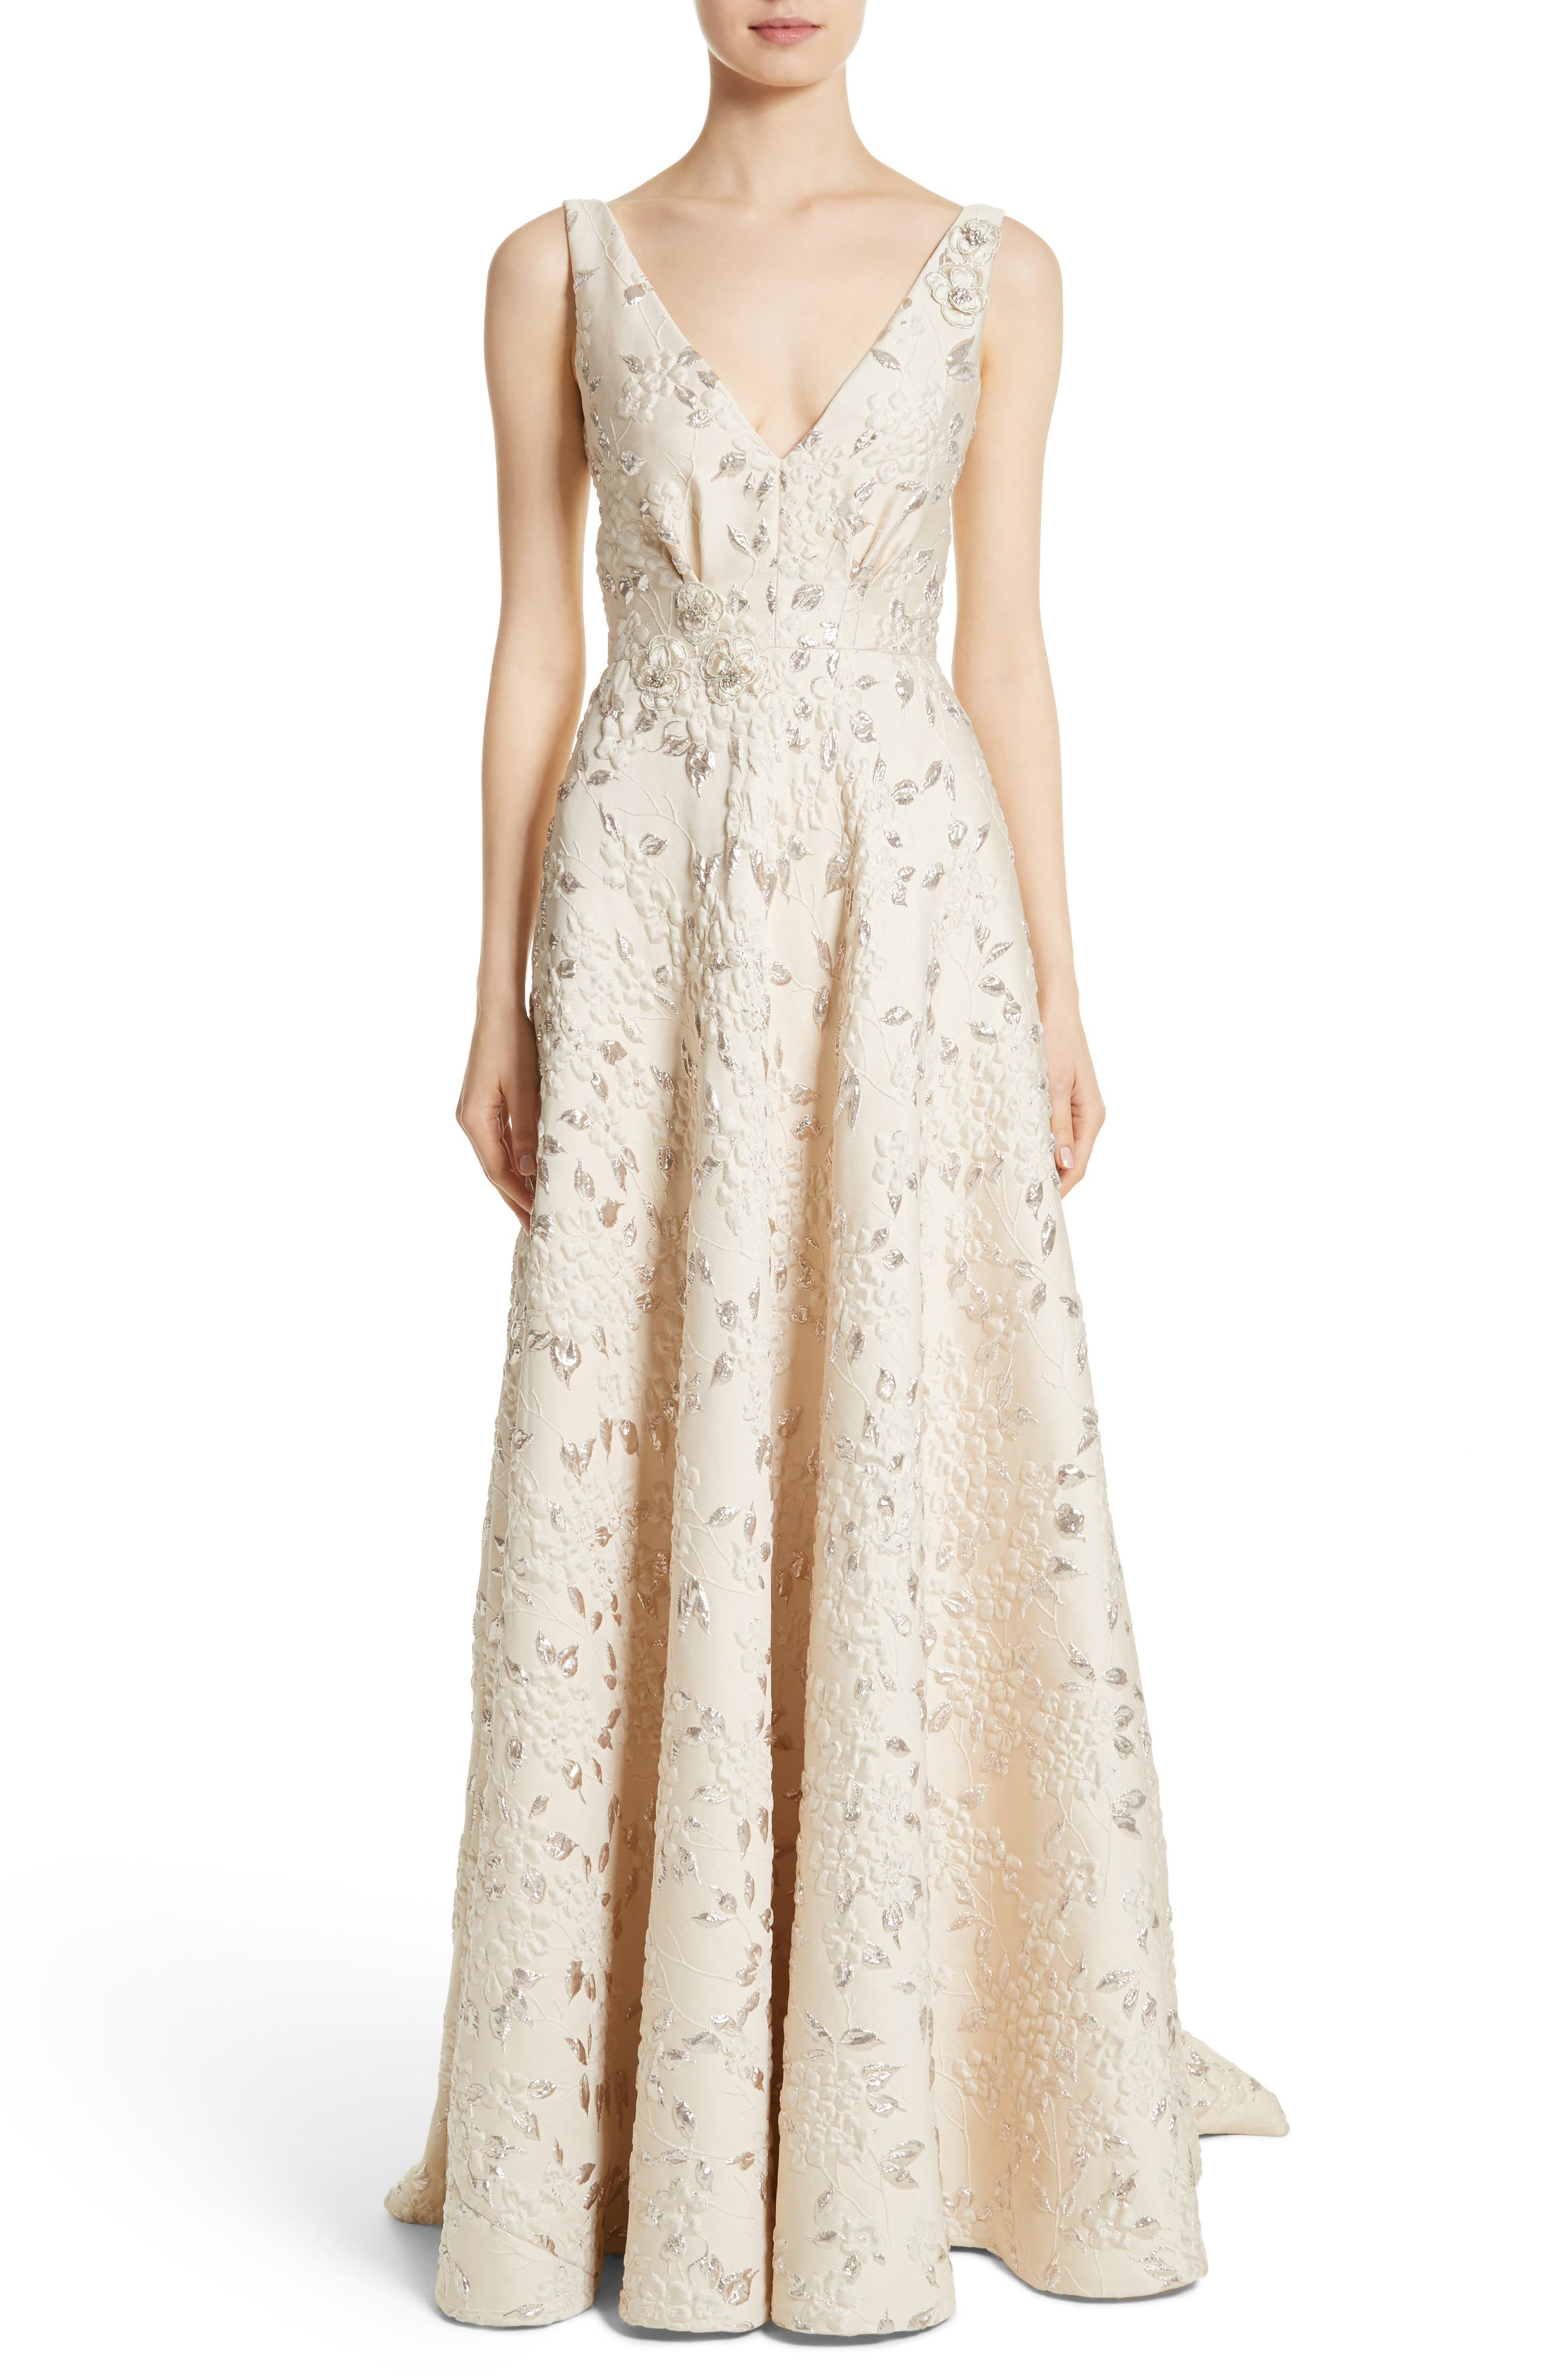 Alternate Image 1 Selected - Carmen Marc Valvo Couture Reembroidered Cloqué Gown